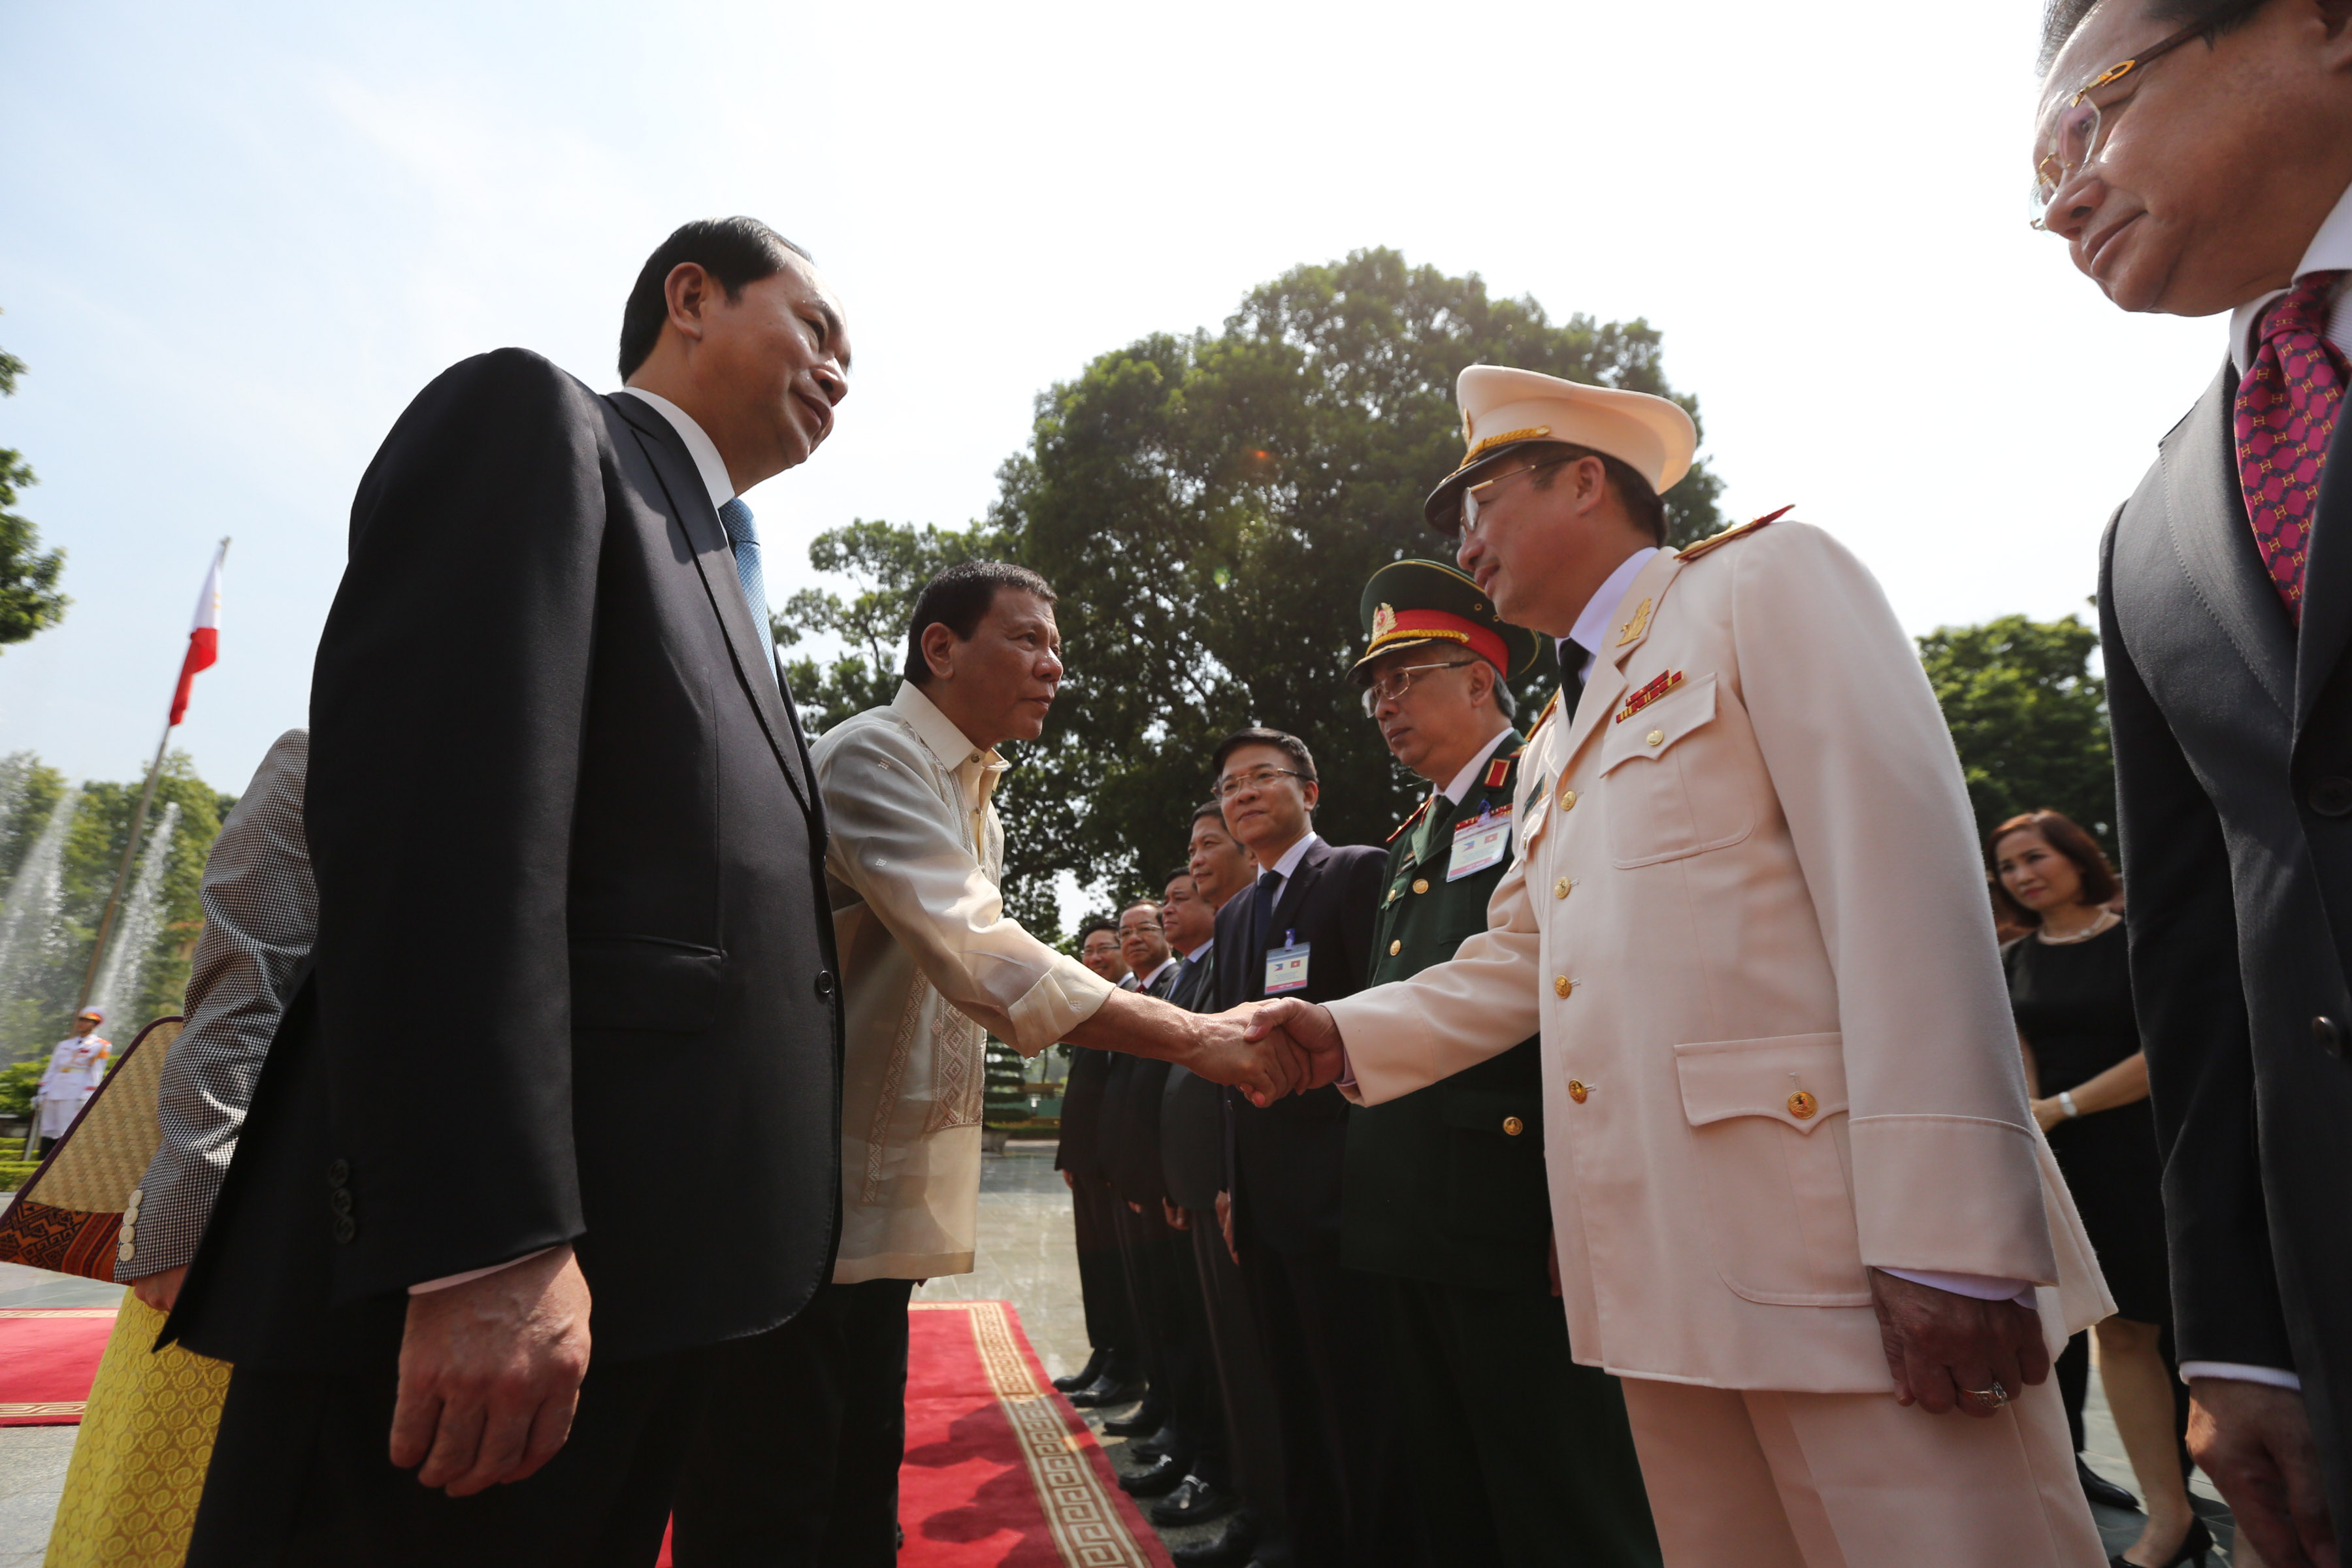 'GOOD ATMOSPHERE.' President Rodrigo Duterte shakes hands with Vietnamese officials beside Vietnamese President Tran Dai Quang at the State Palace in Hanoi on September 29, 2016. Photo by KING RODRIGUEZ/ Presidential Photo